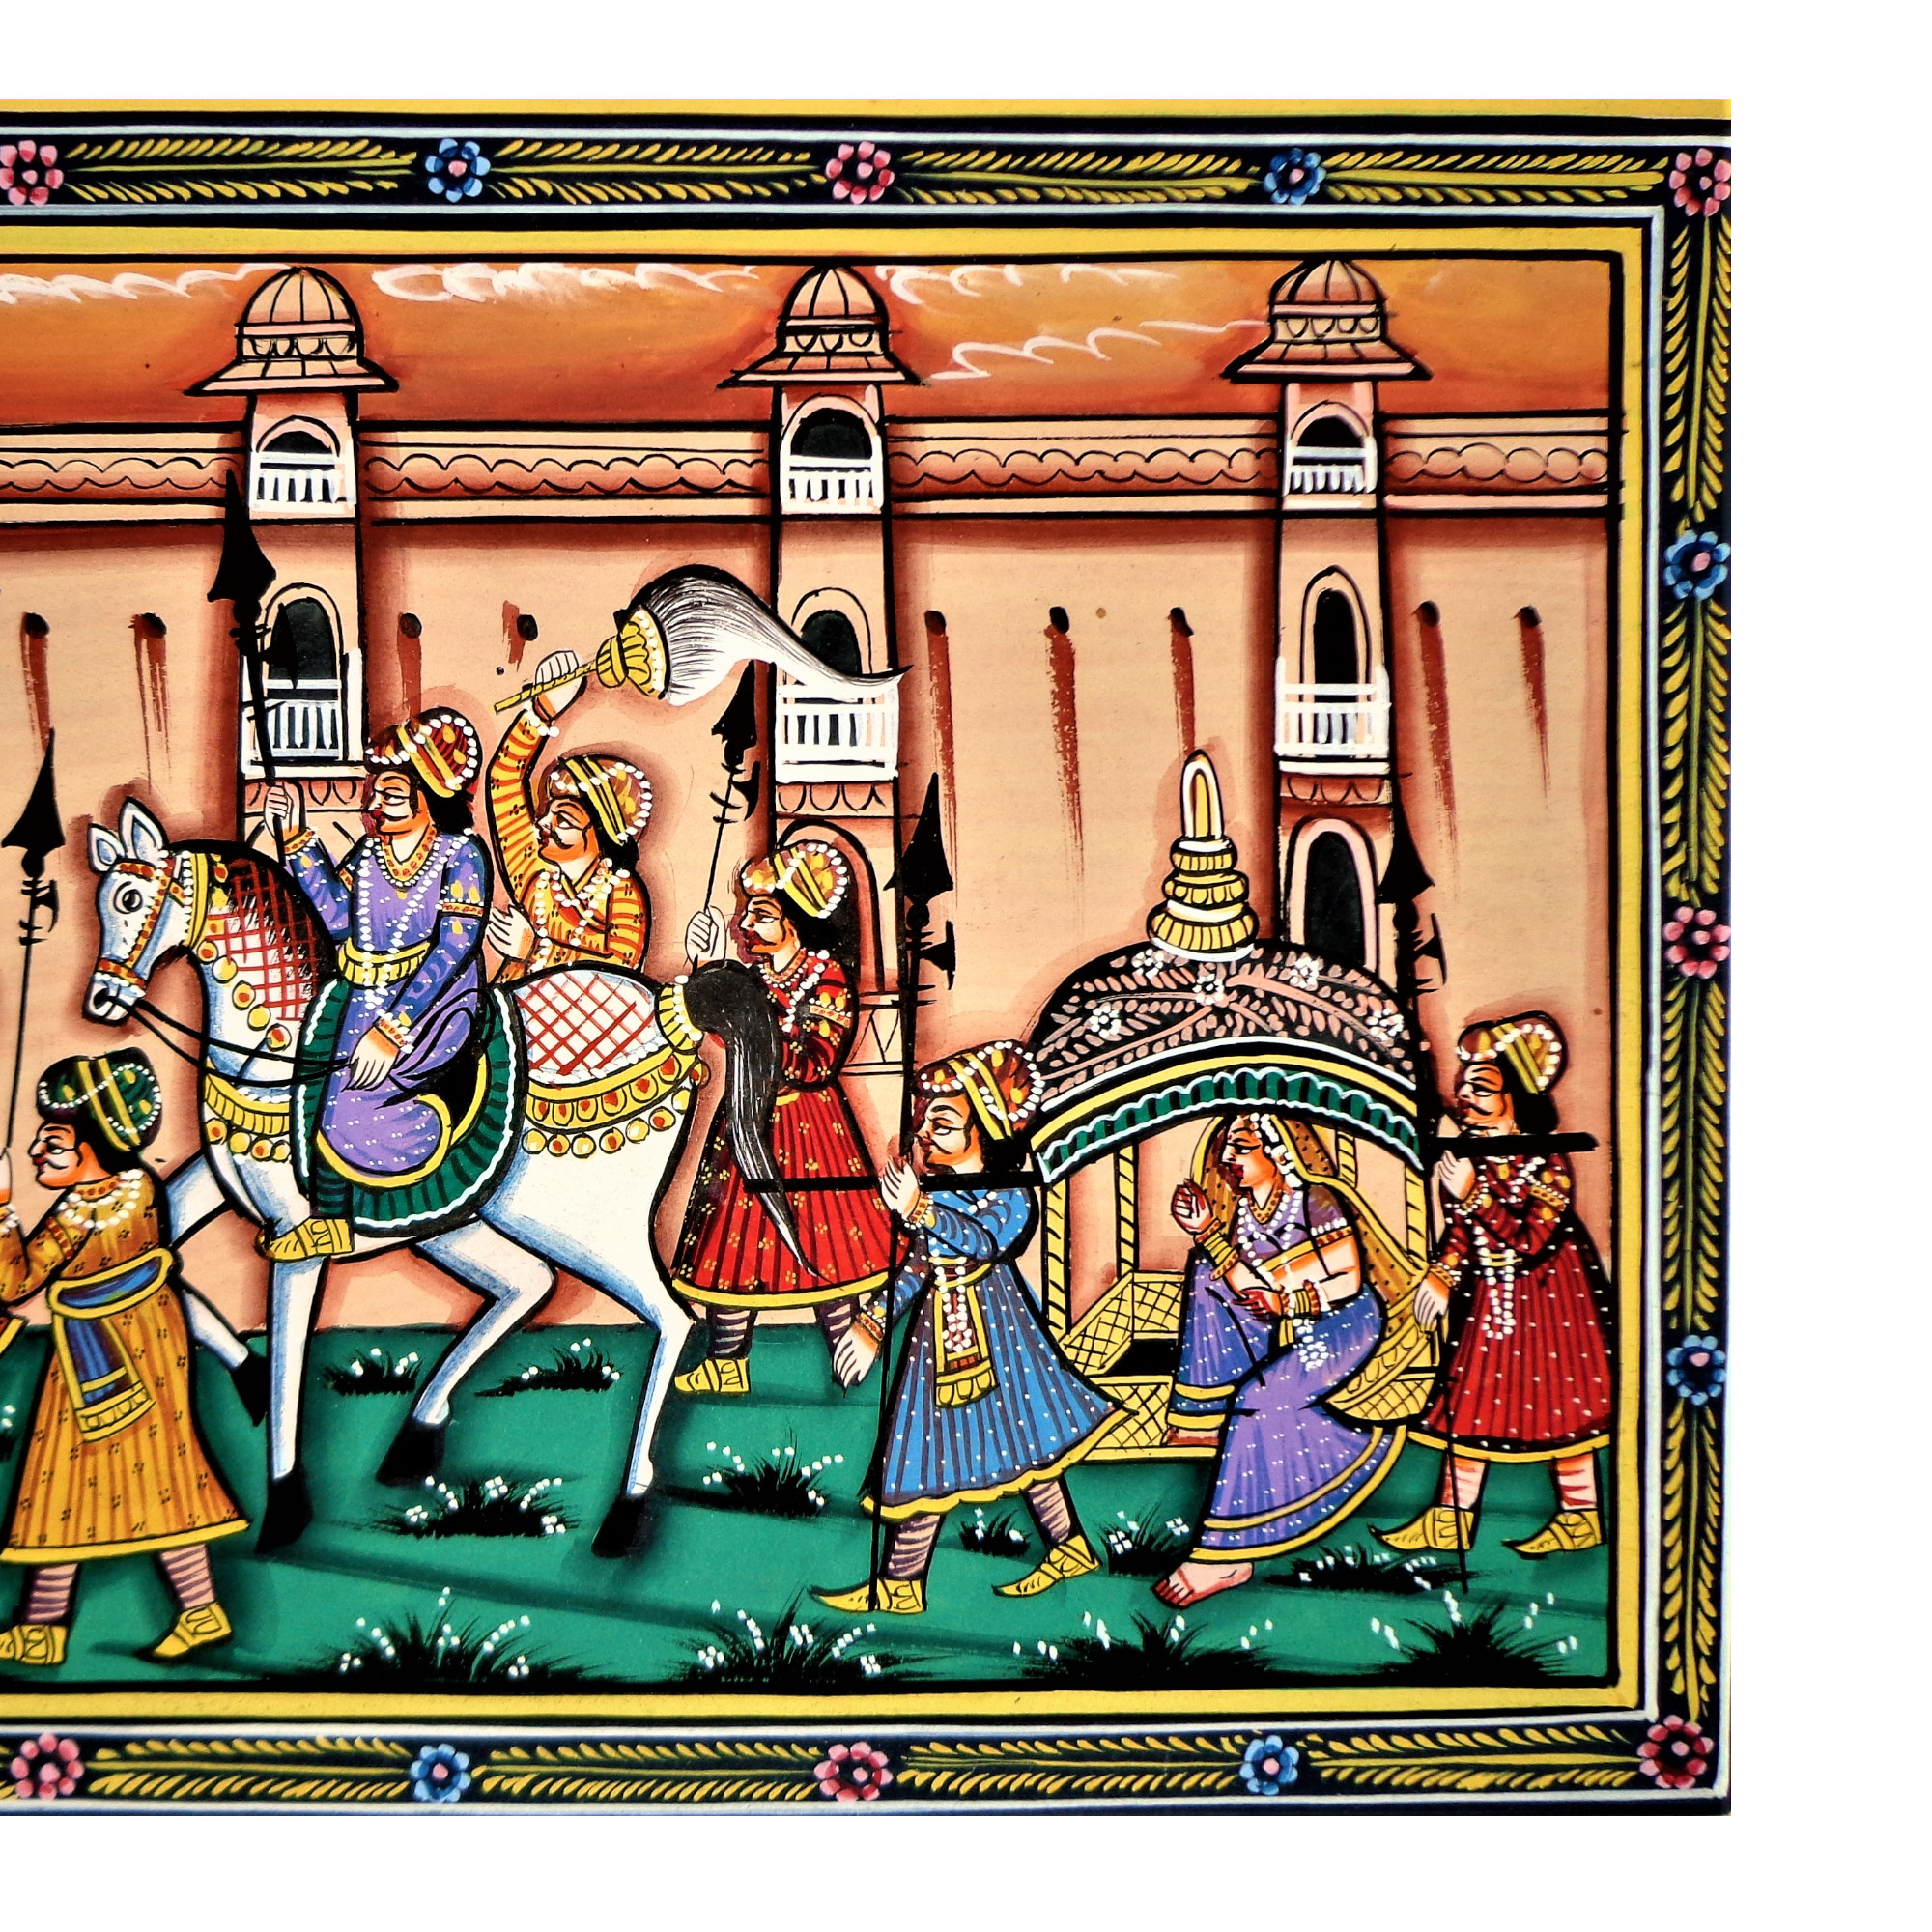 The Royal Rajputana Rajasthani Miniature Painting